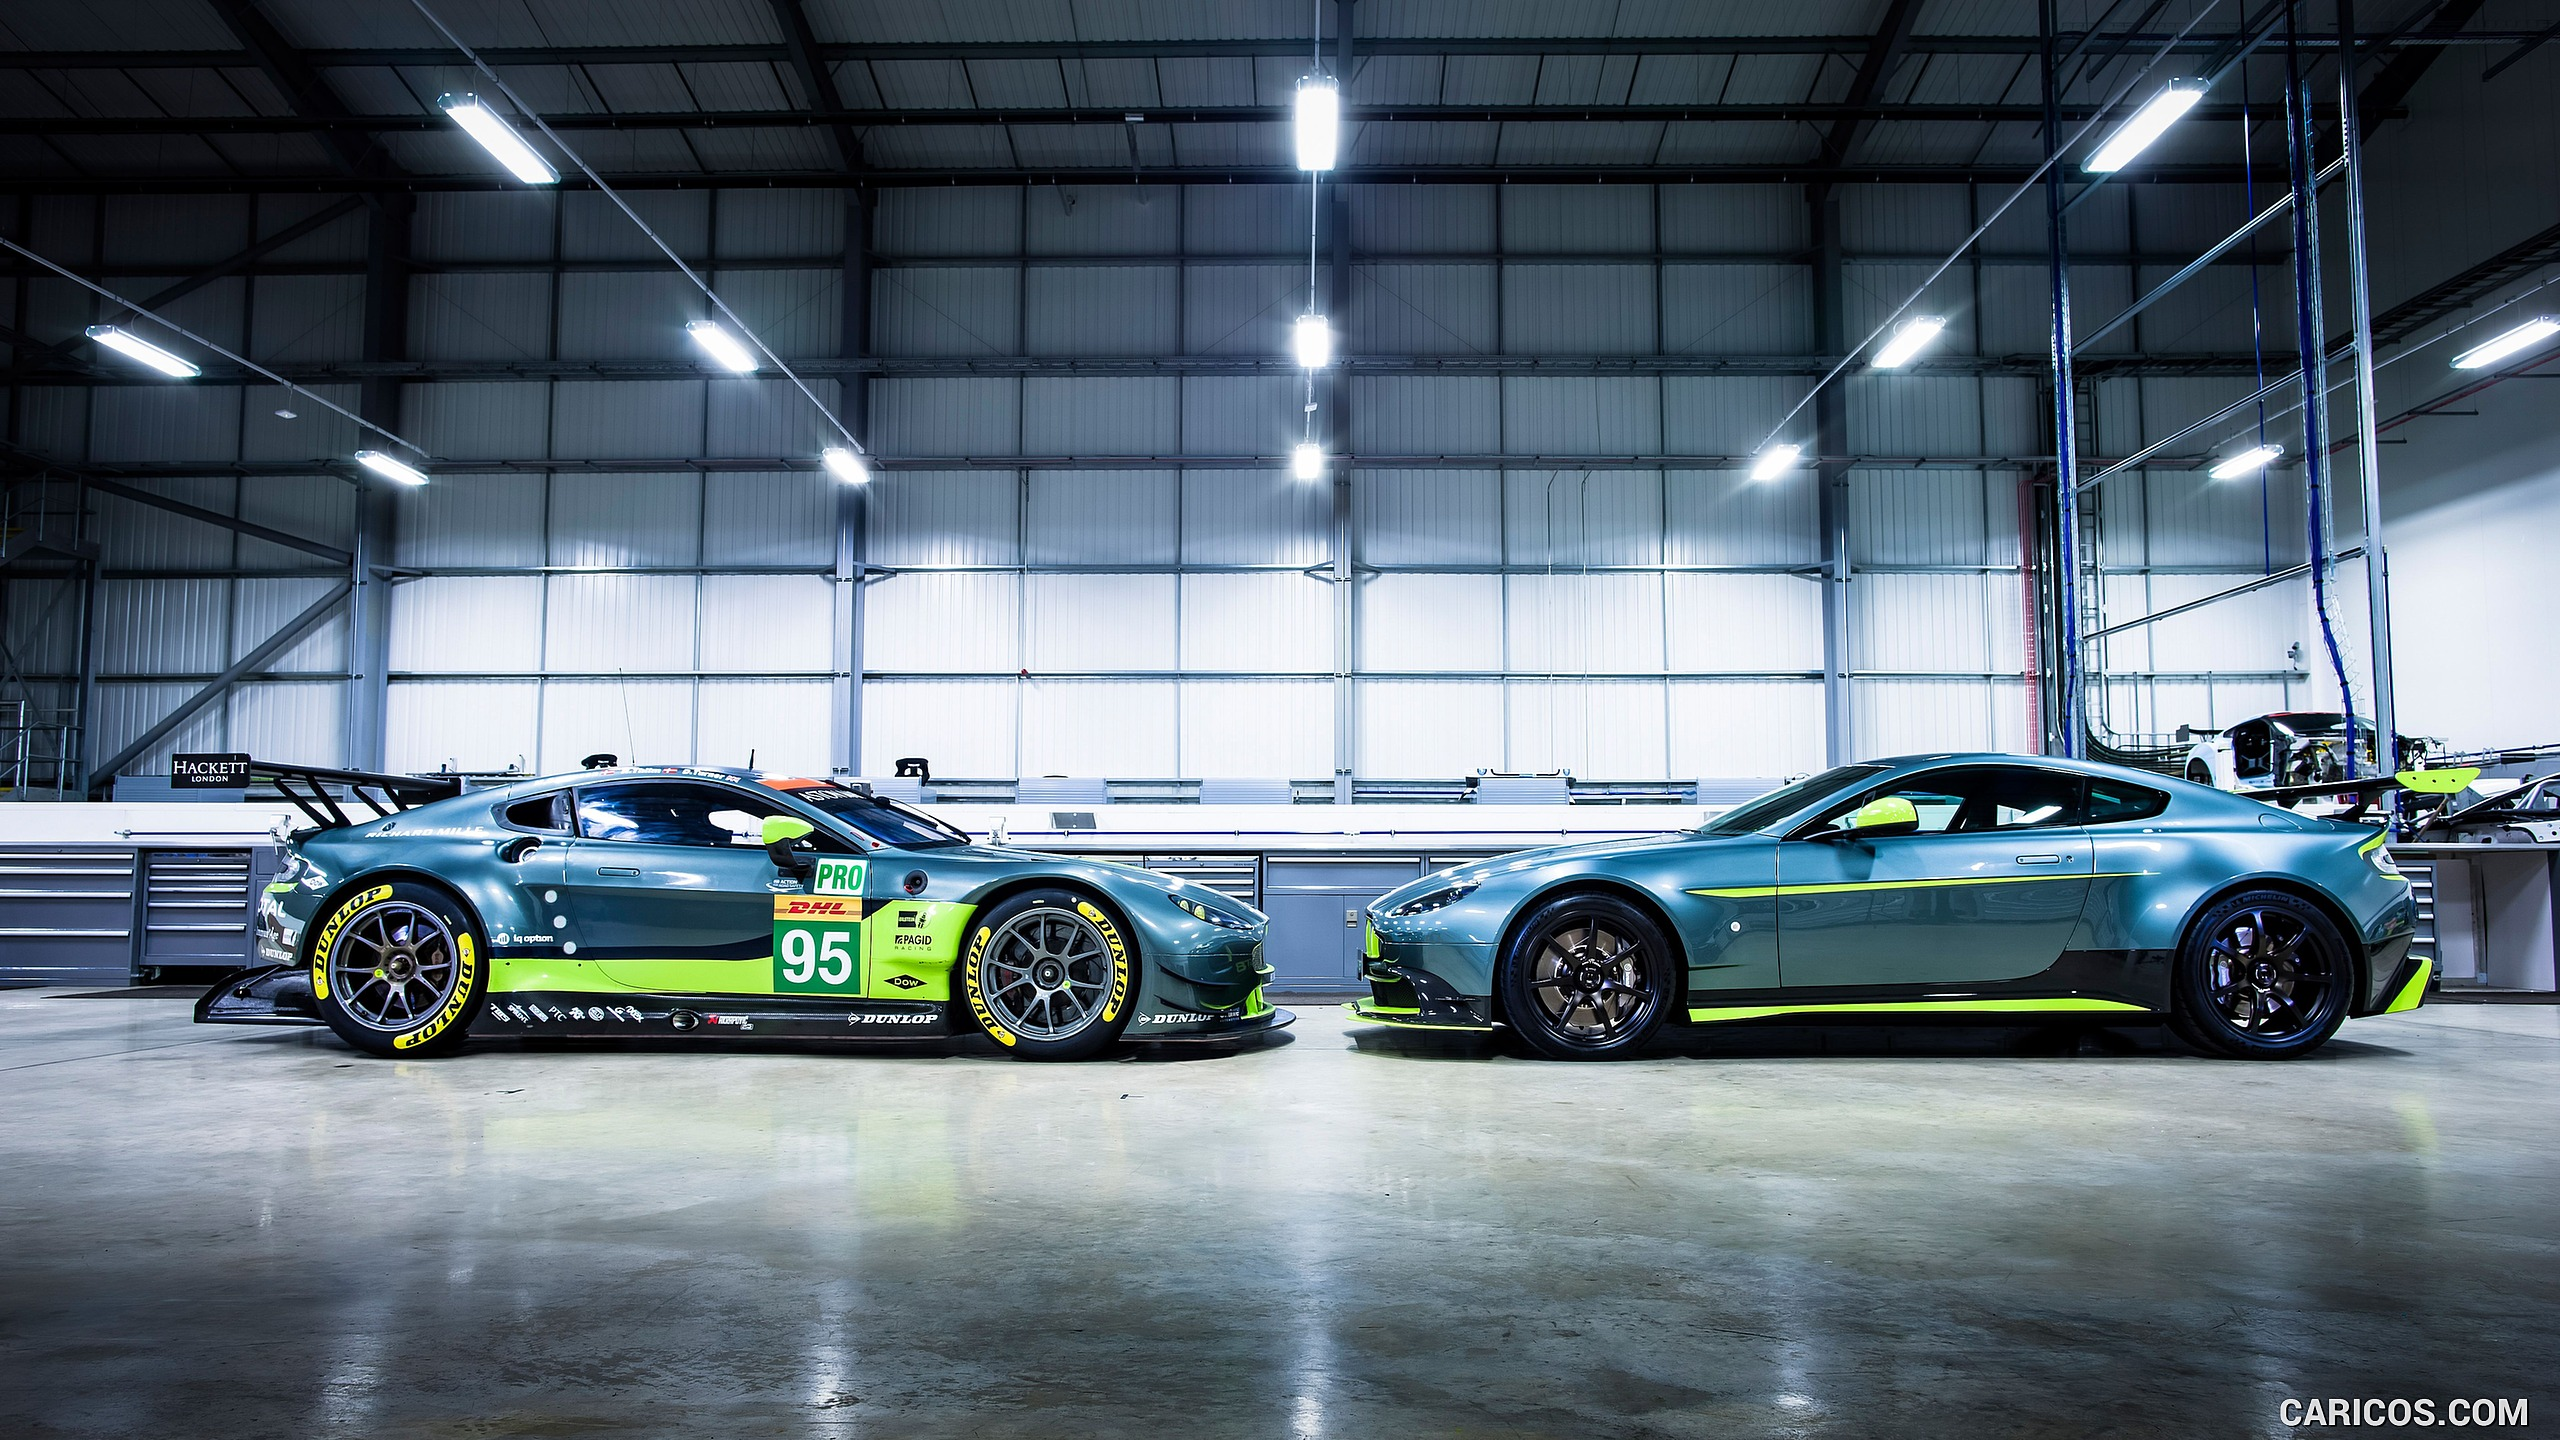 2017 Aston Martin Vantage GT8 and AM V8 Vantage GTE race car 2560x1440